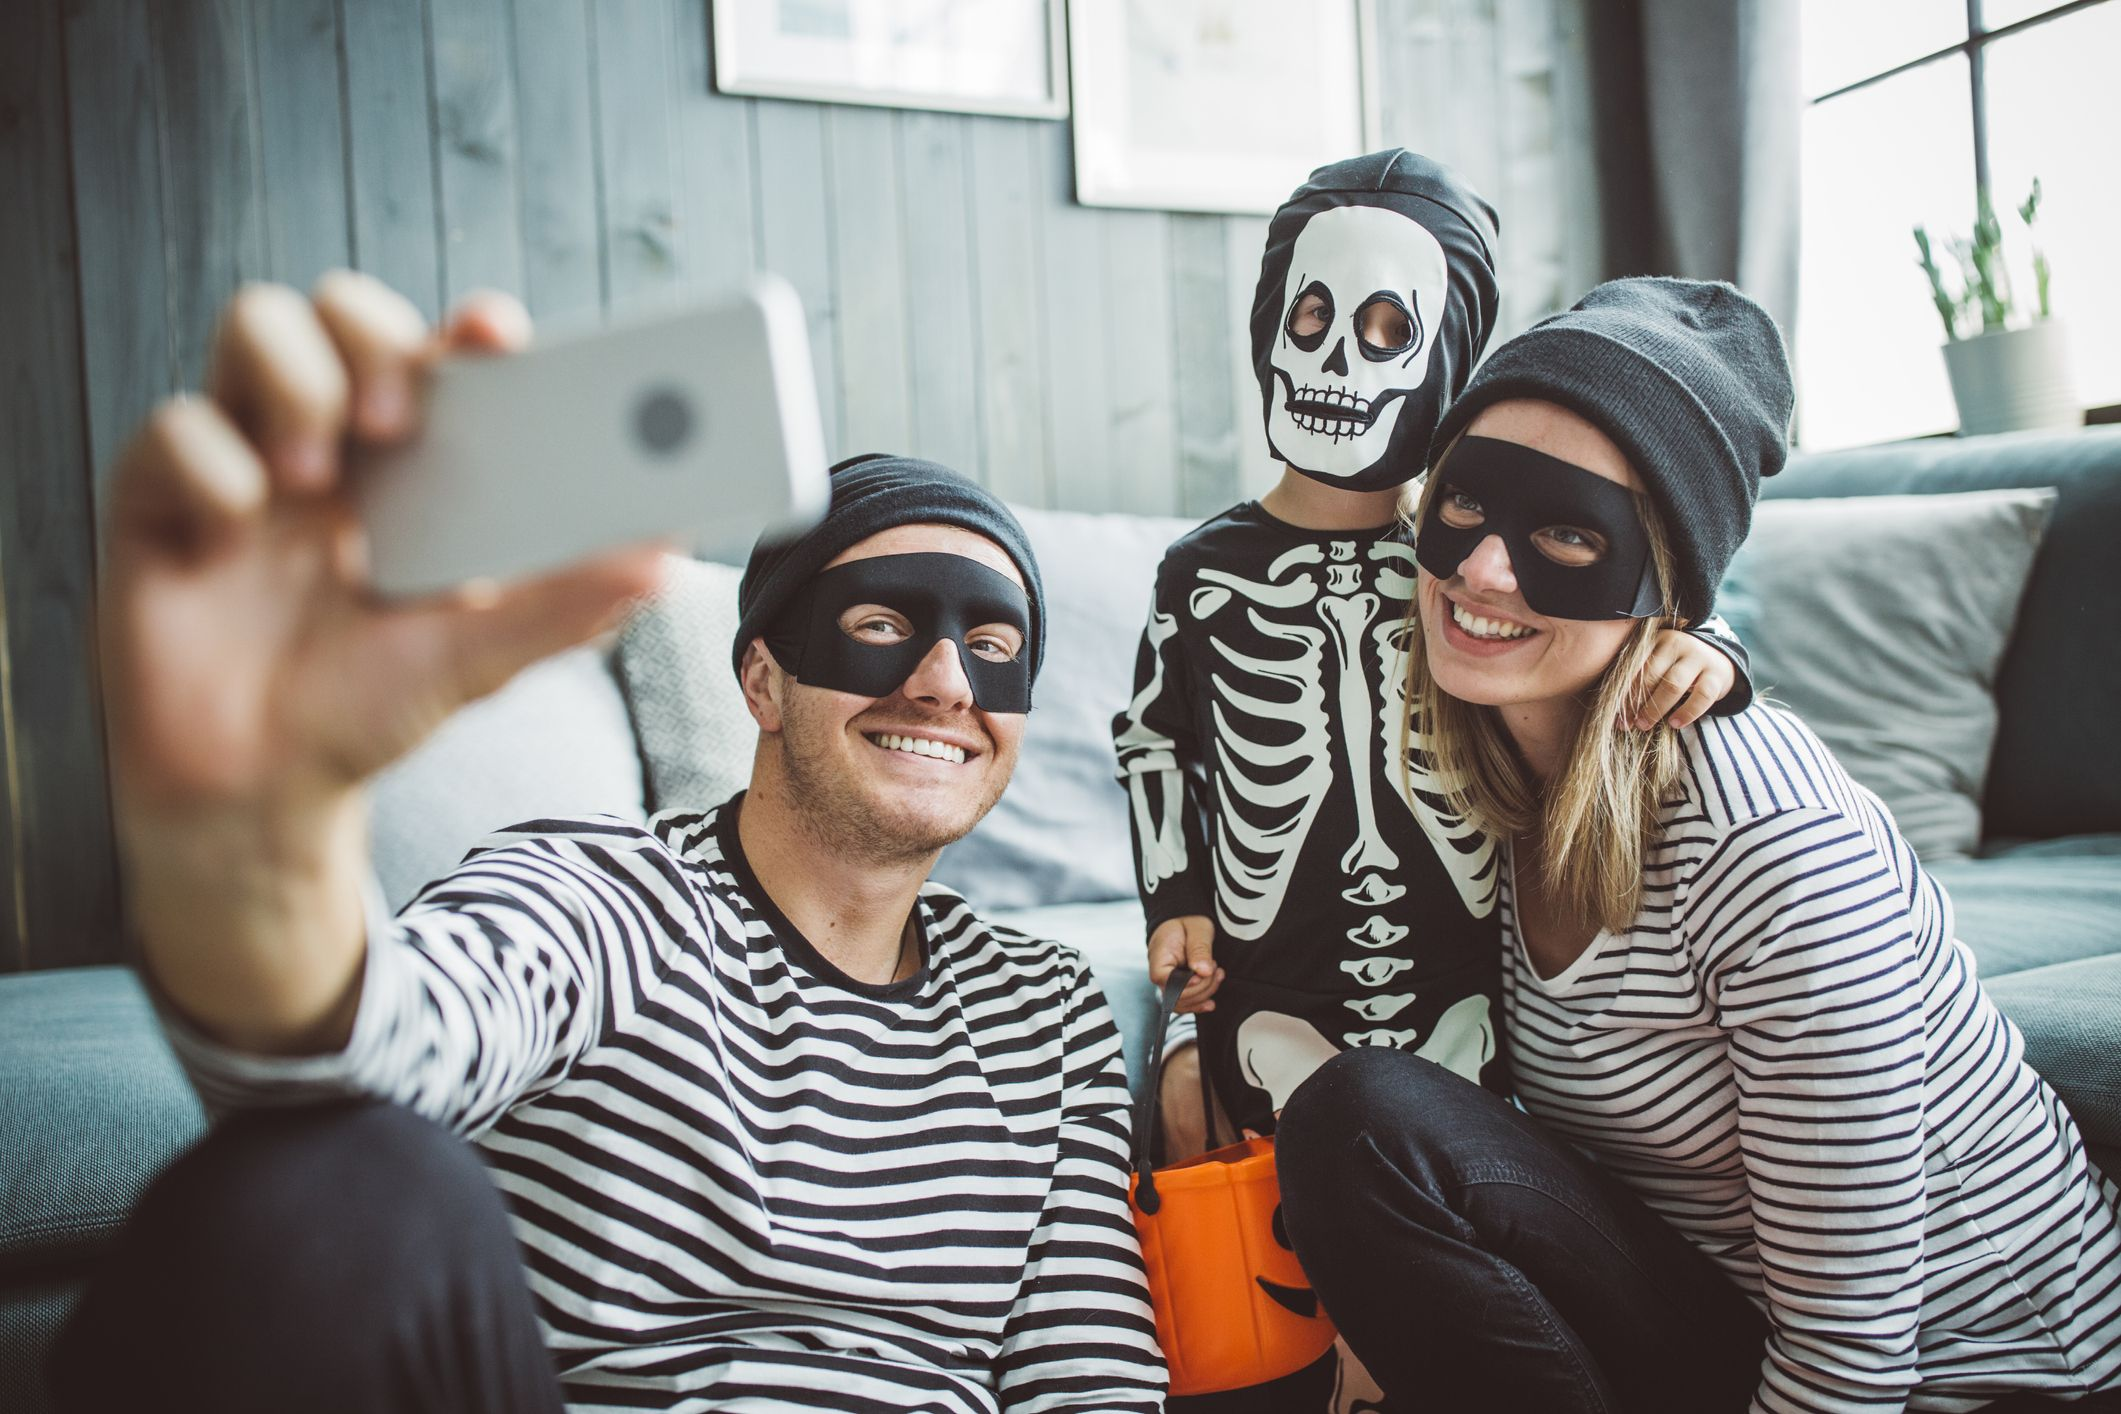 75+ Halloween Captions for Instagram - Cute Photo Captions